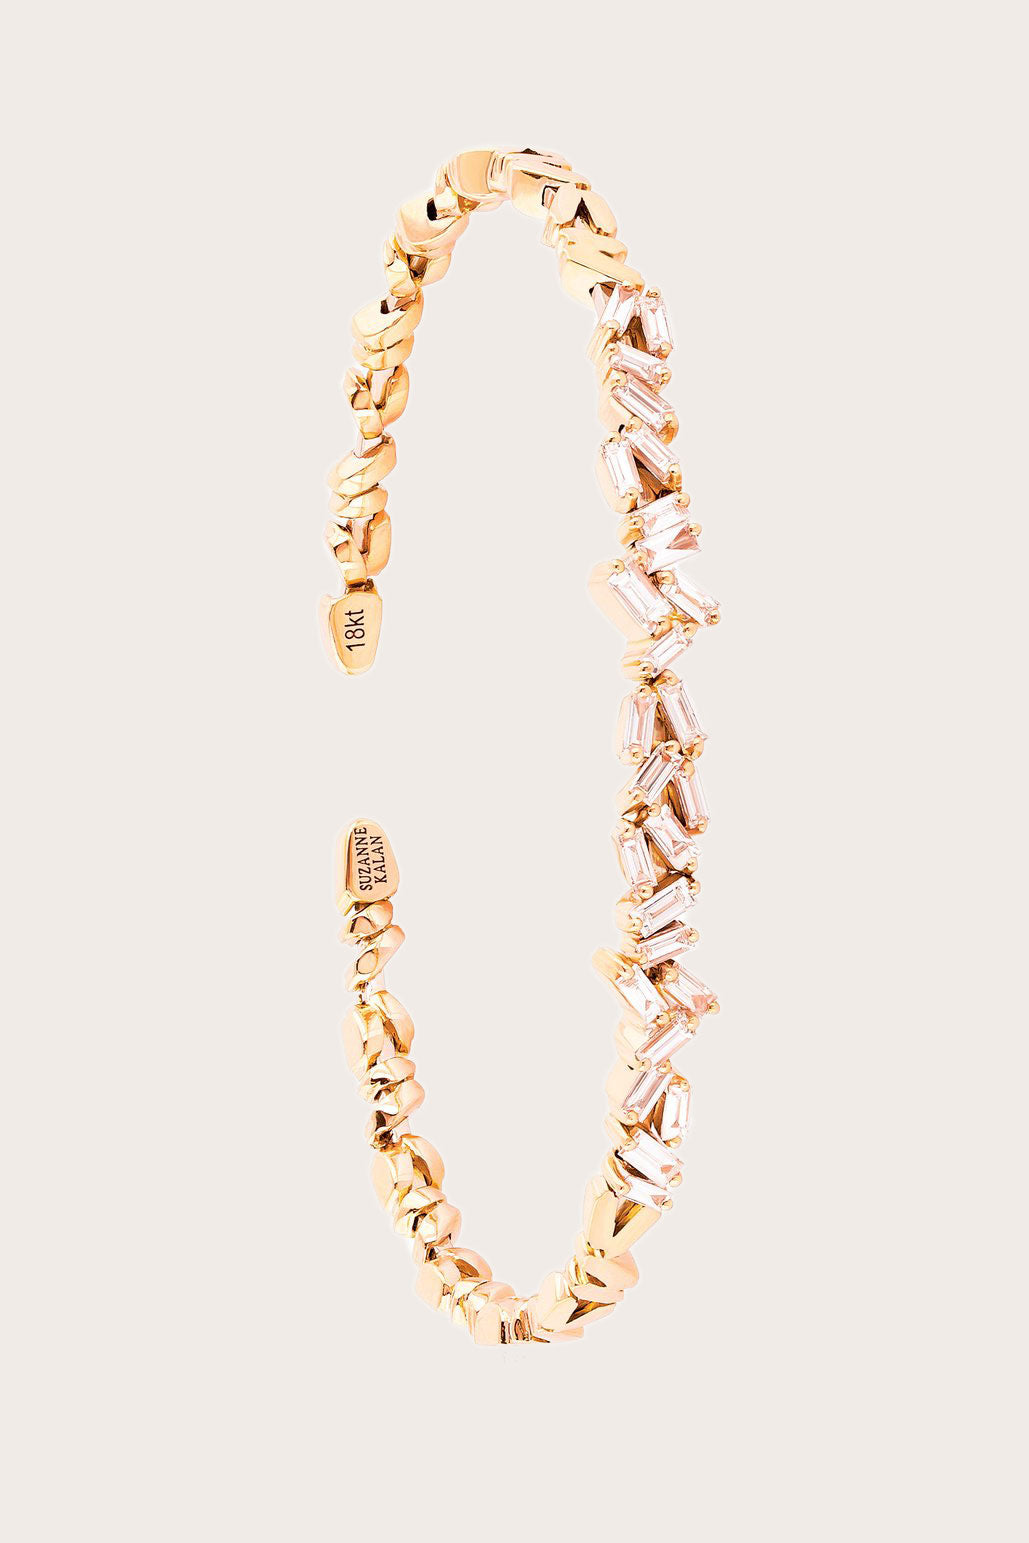 SUZANNE KALAN - Classic ZigZag Bangle, Gold